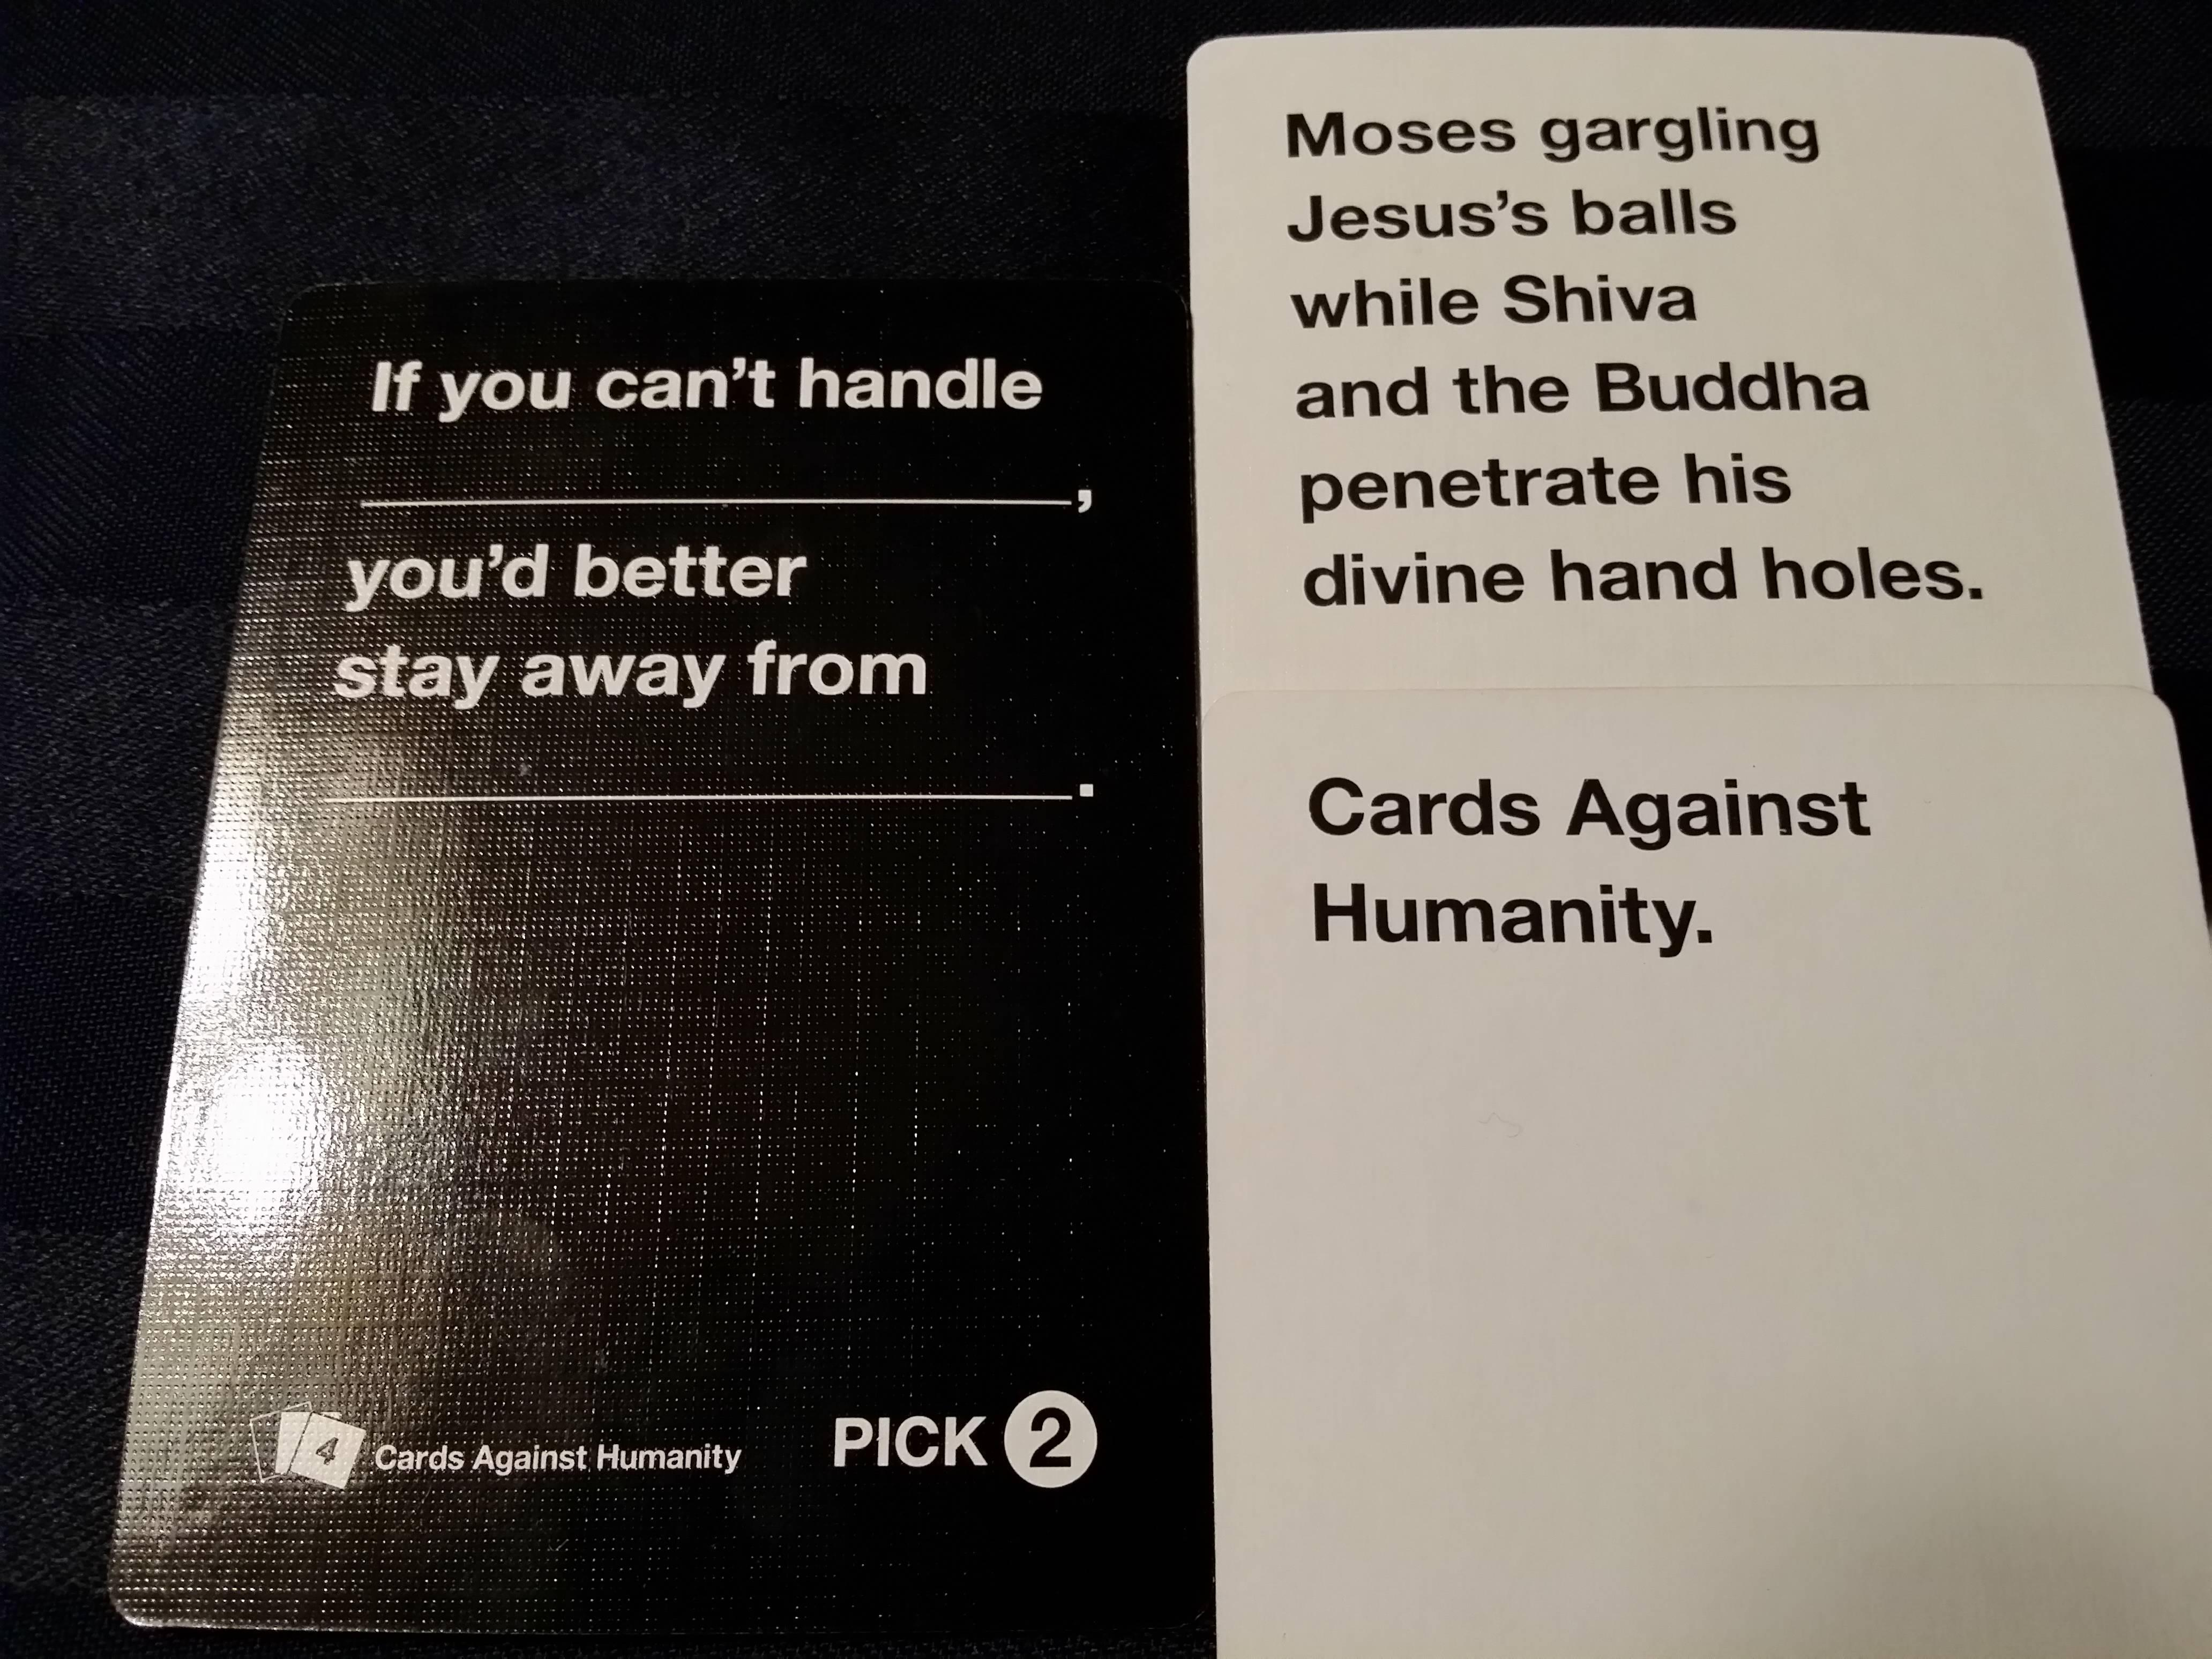 9 Times Cards Against Humanity Got It Right - Comediva